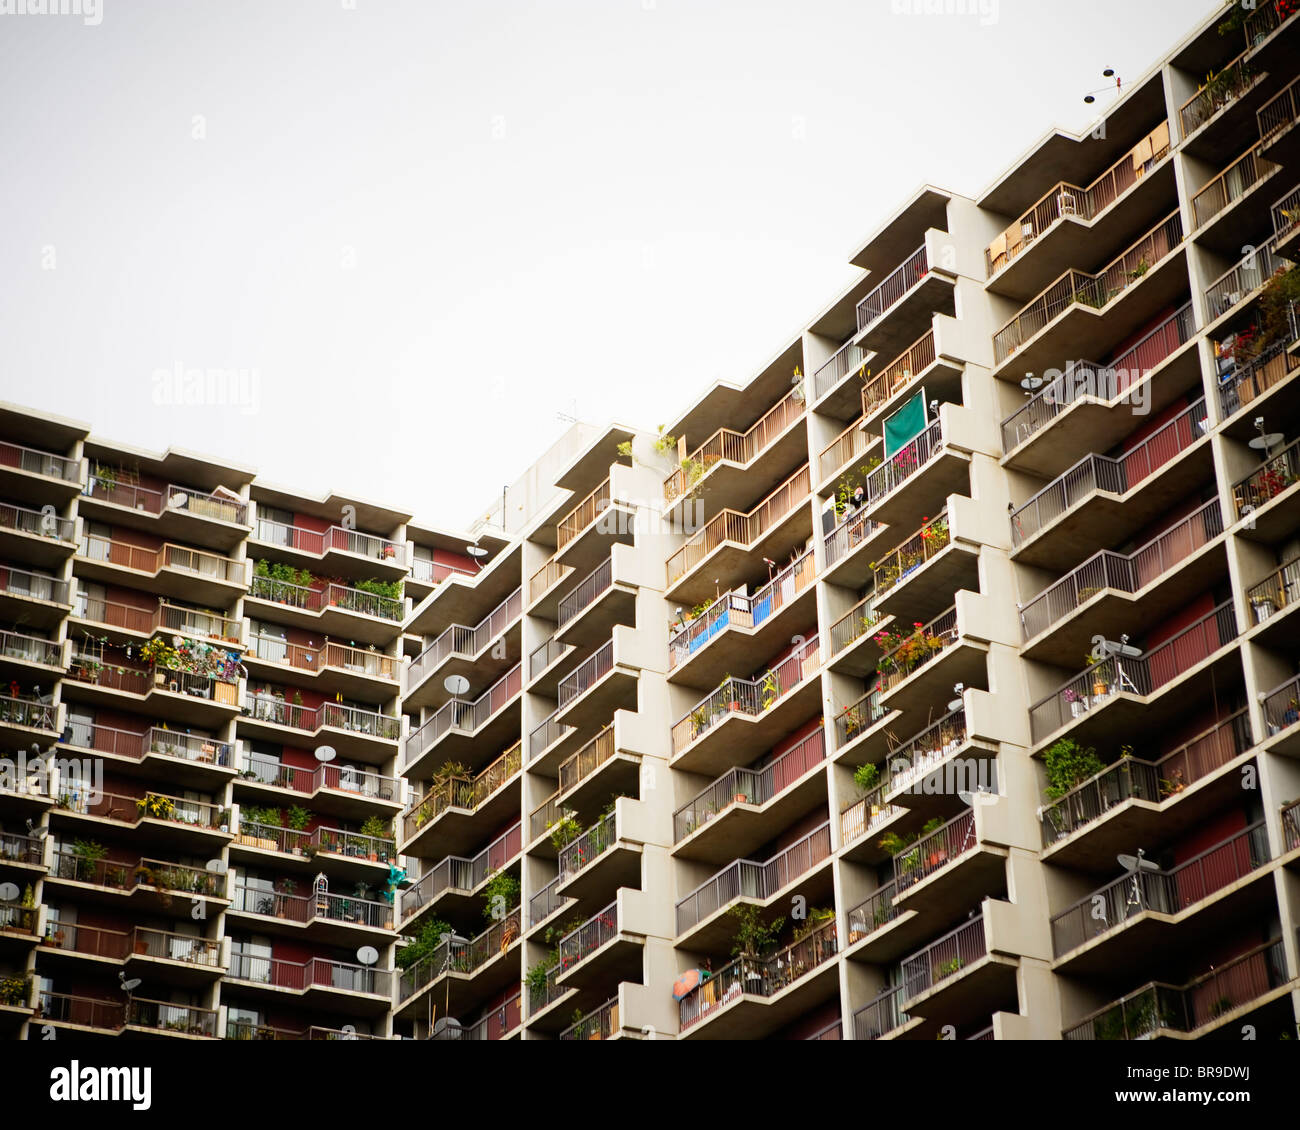 Balconies of high rise apartments Los Angeles California. - Stock Image